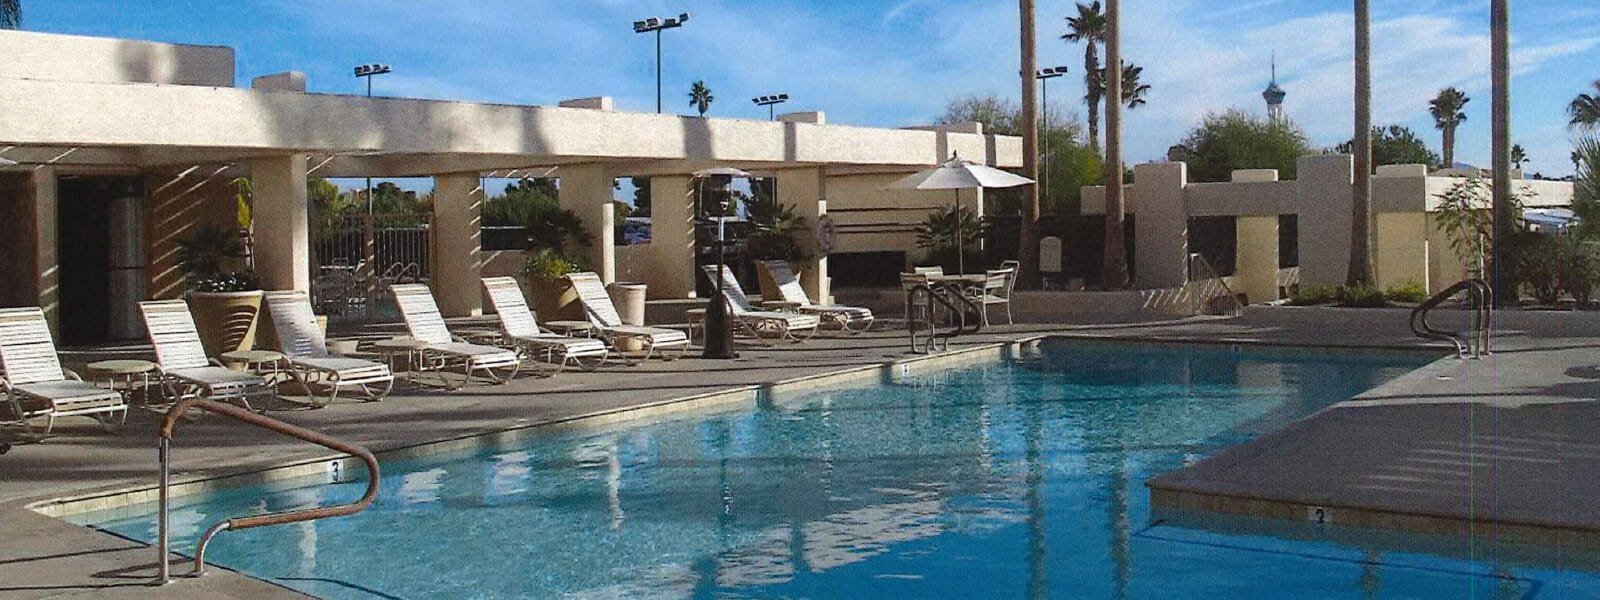 Las Vegas Meadows Active 55+ Community in Las Vegas NV